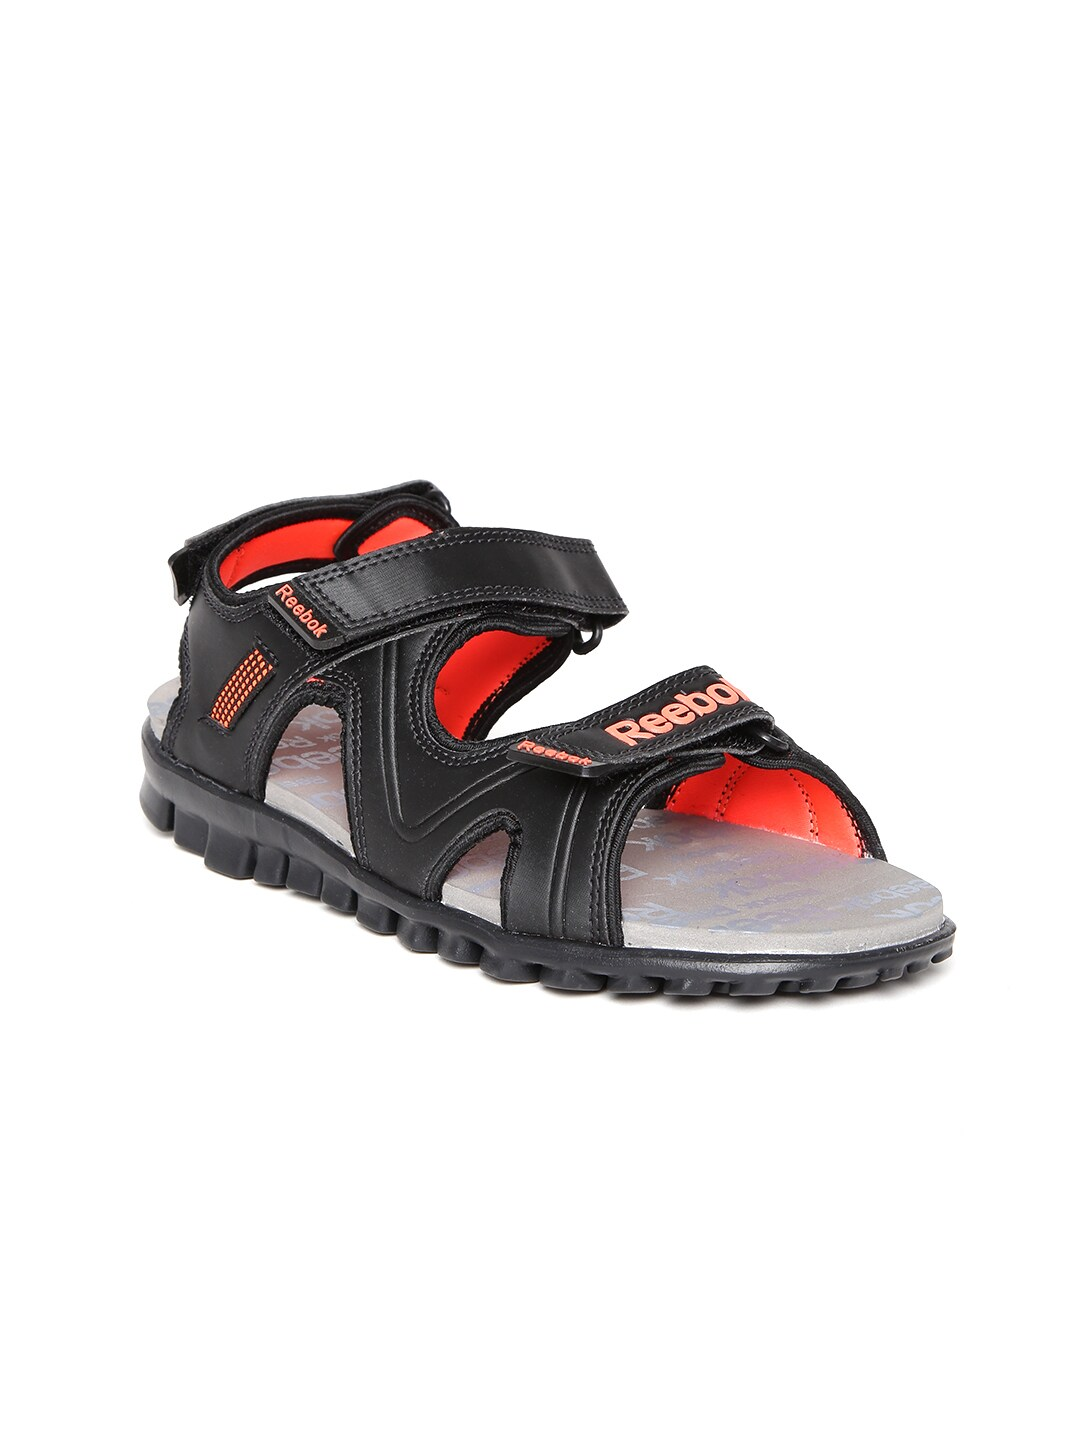 152296a97 Reebok ar1730 Women Black Reeflex Sports Sandals- Price in India. reebok- style code- ar1730